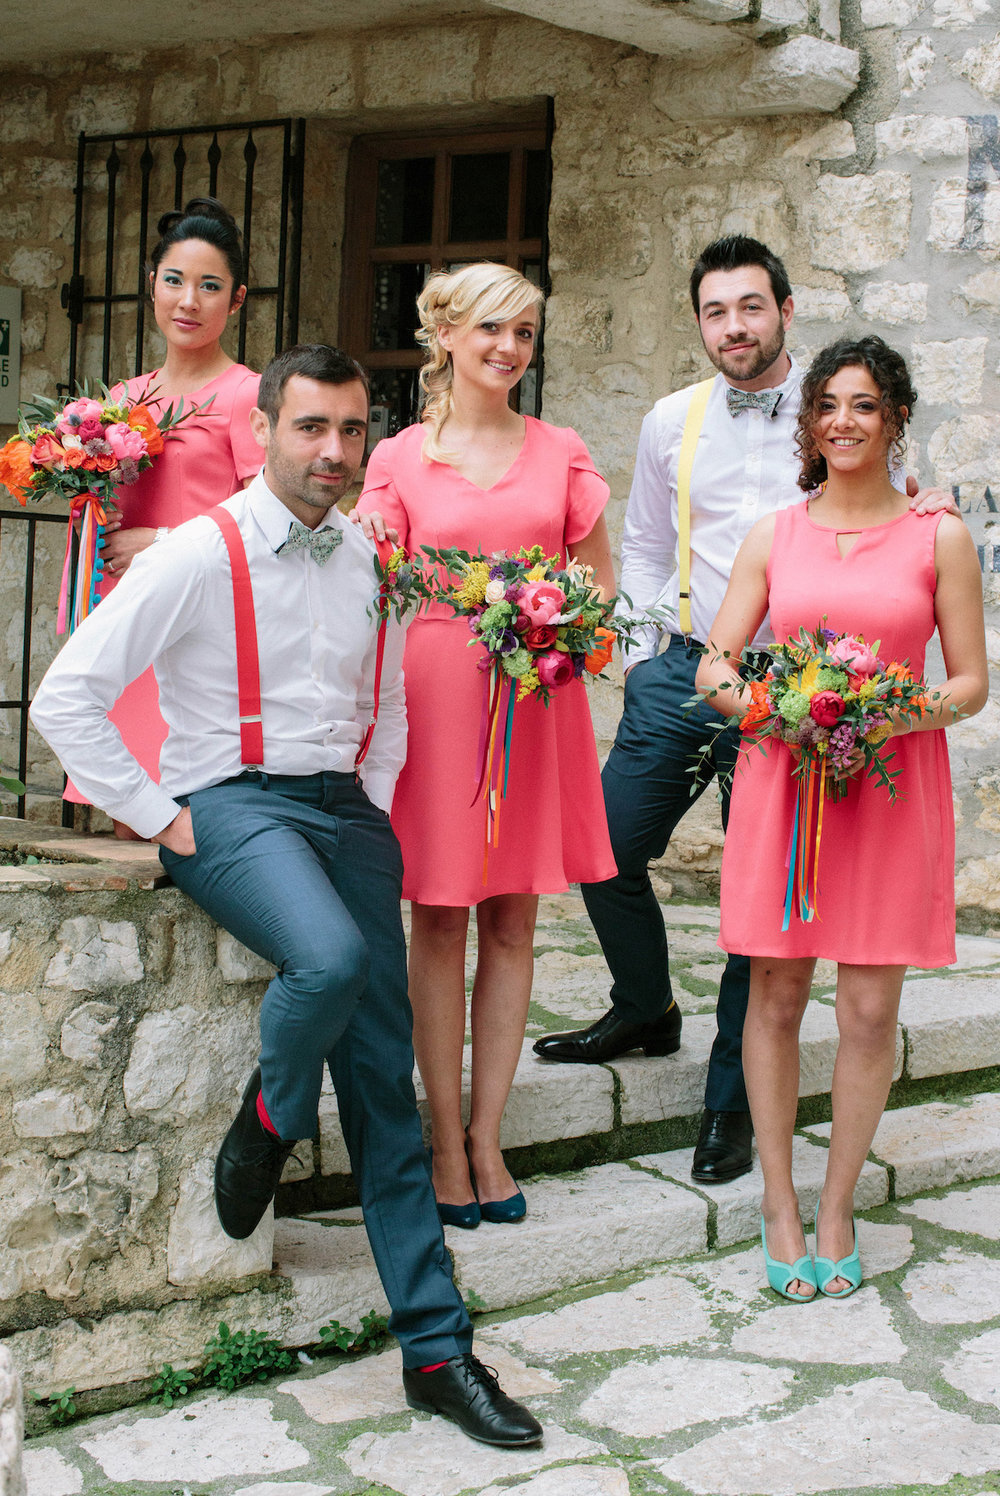 elopement-colorful-©-saya-photography-wedding-photographer-photographe-mariage-saint-paul-vence-rock-my-love-studio-ohlala-french-riviera-groomsmen-bridesmaid-guest-lecolonelmoutarde-atelier-charlotte-auzou-shoes-alix-de-la-forest